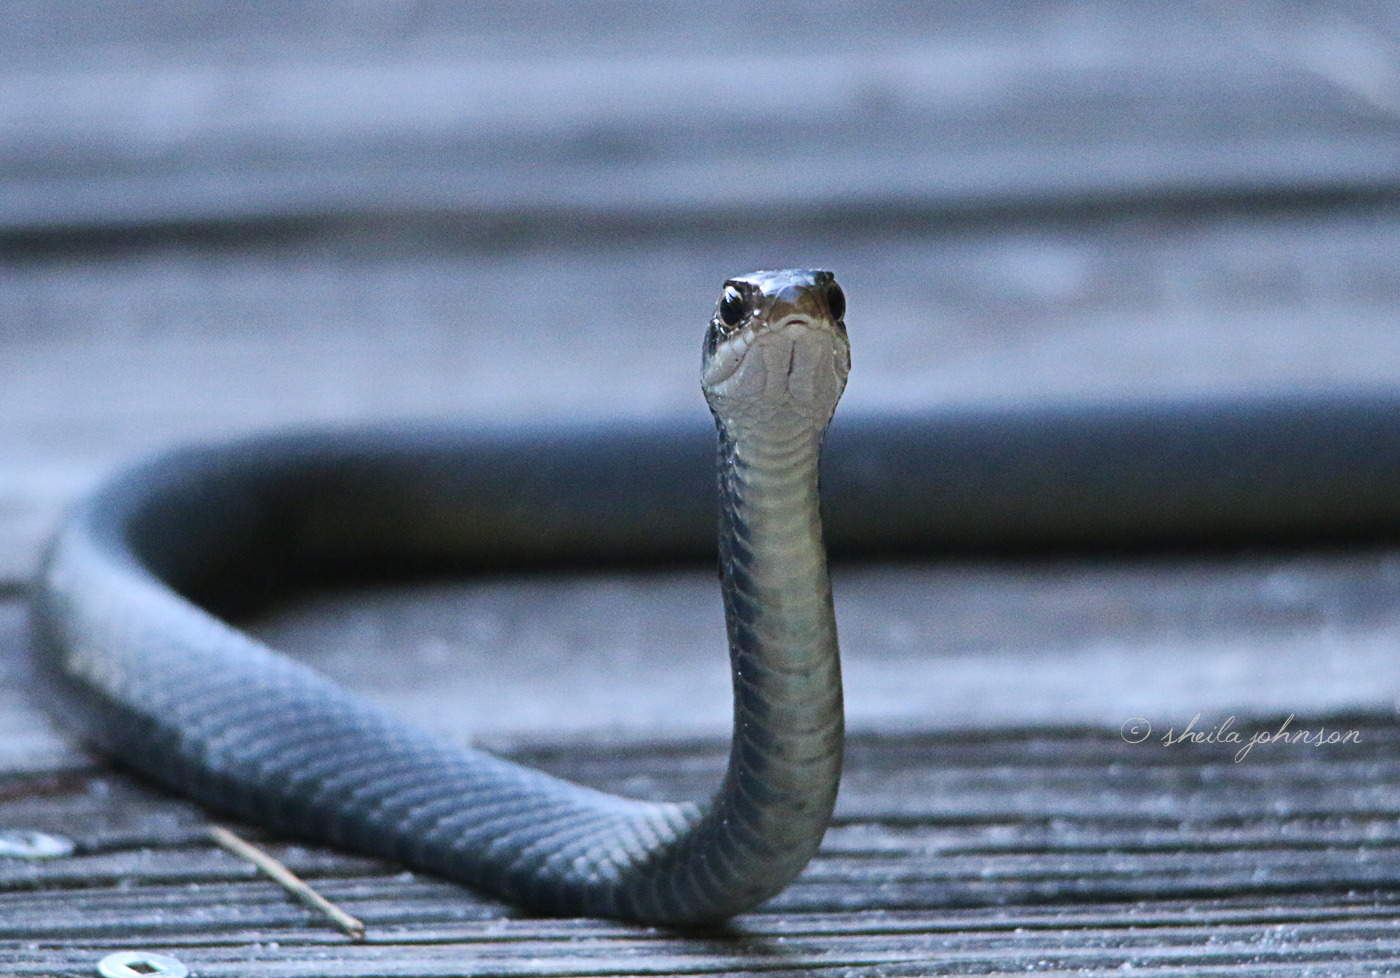 This tiny Black Snake thinks he's a big shot. He's blocking the way to the boardwalk, until I take just one step forward.